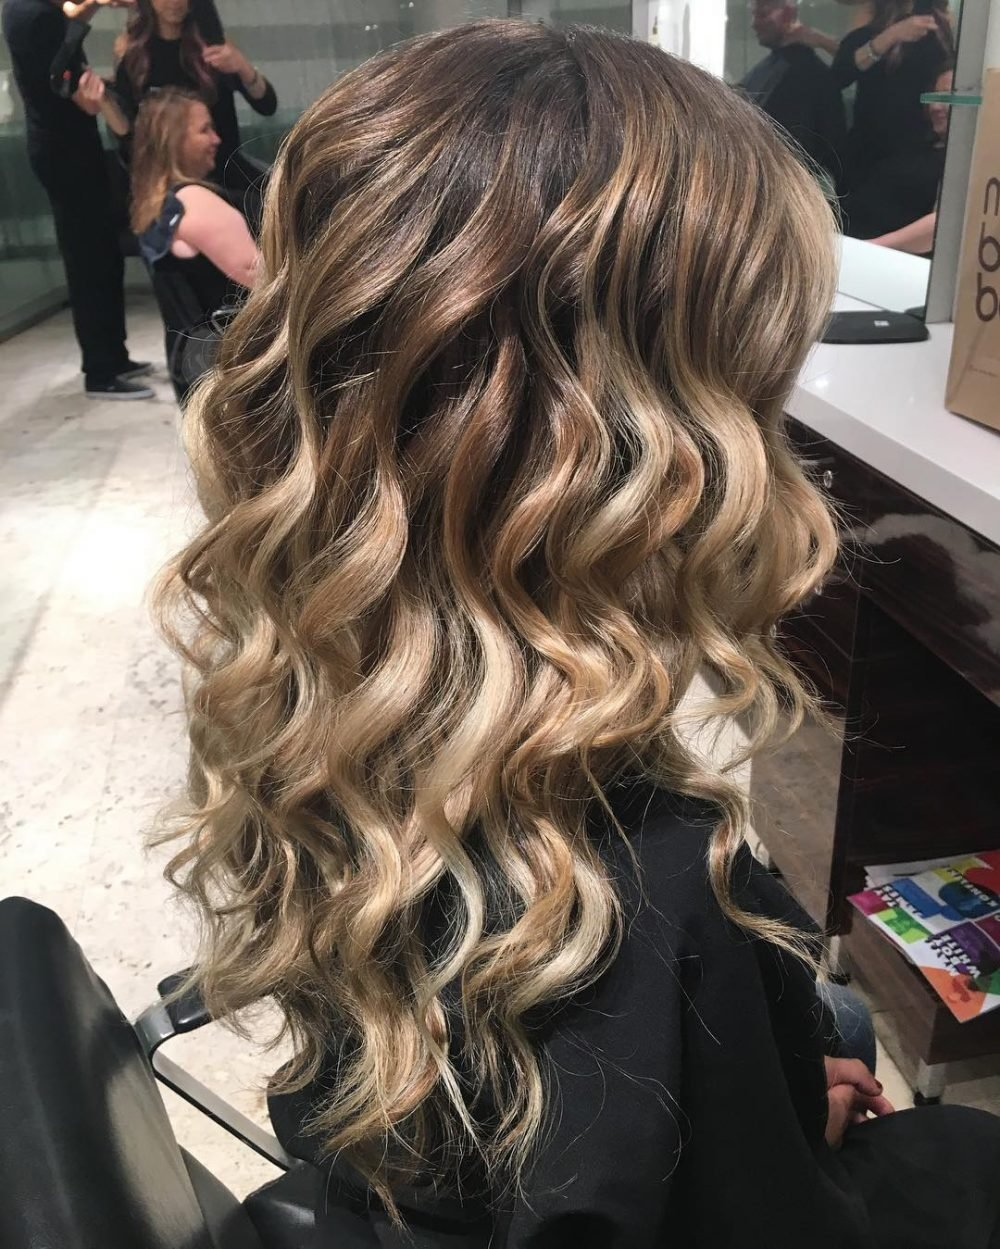 The Best 18 Stunning Curly Prom Hairstyles For 2019 Updos Down Pictures